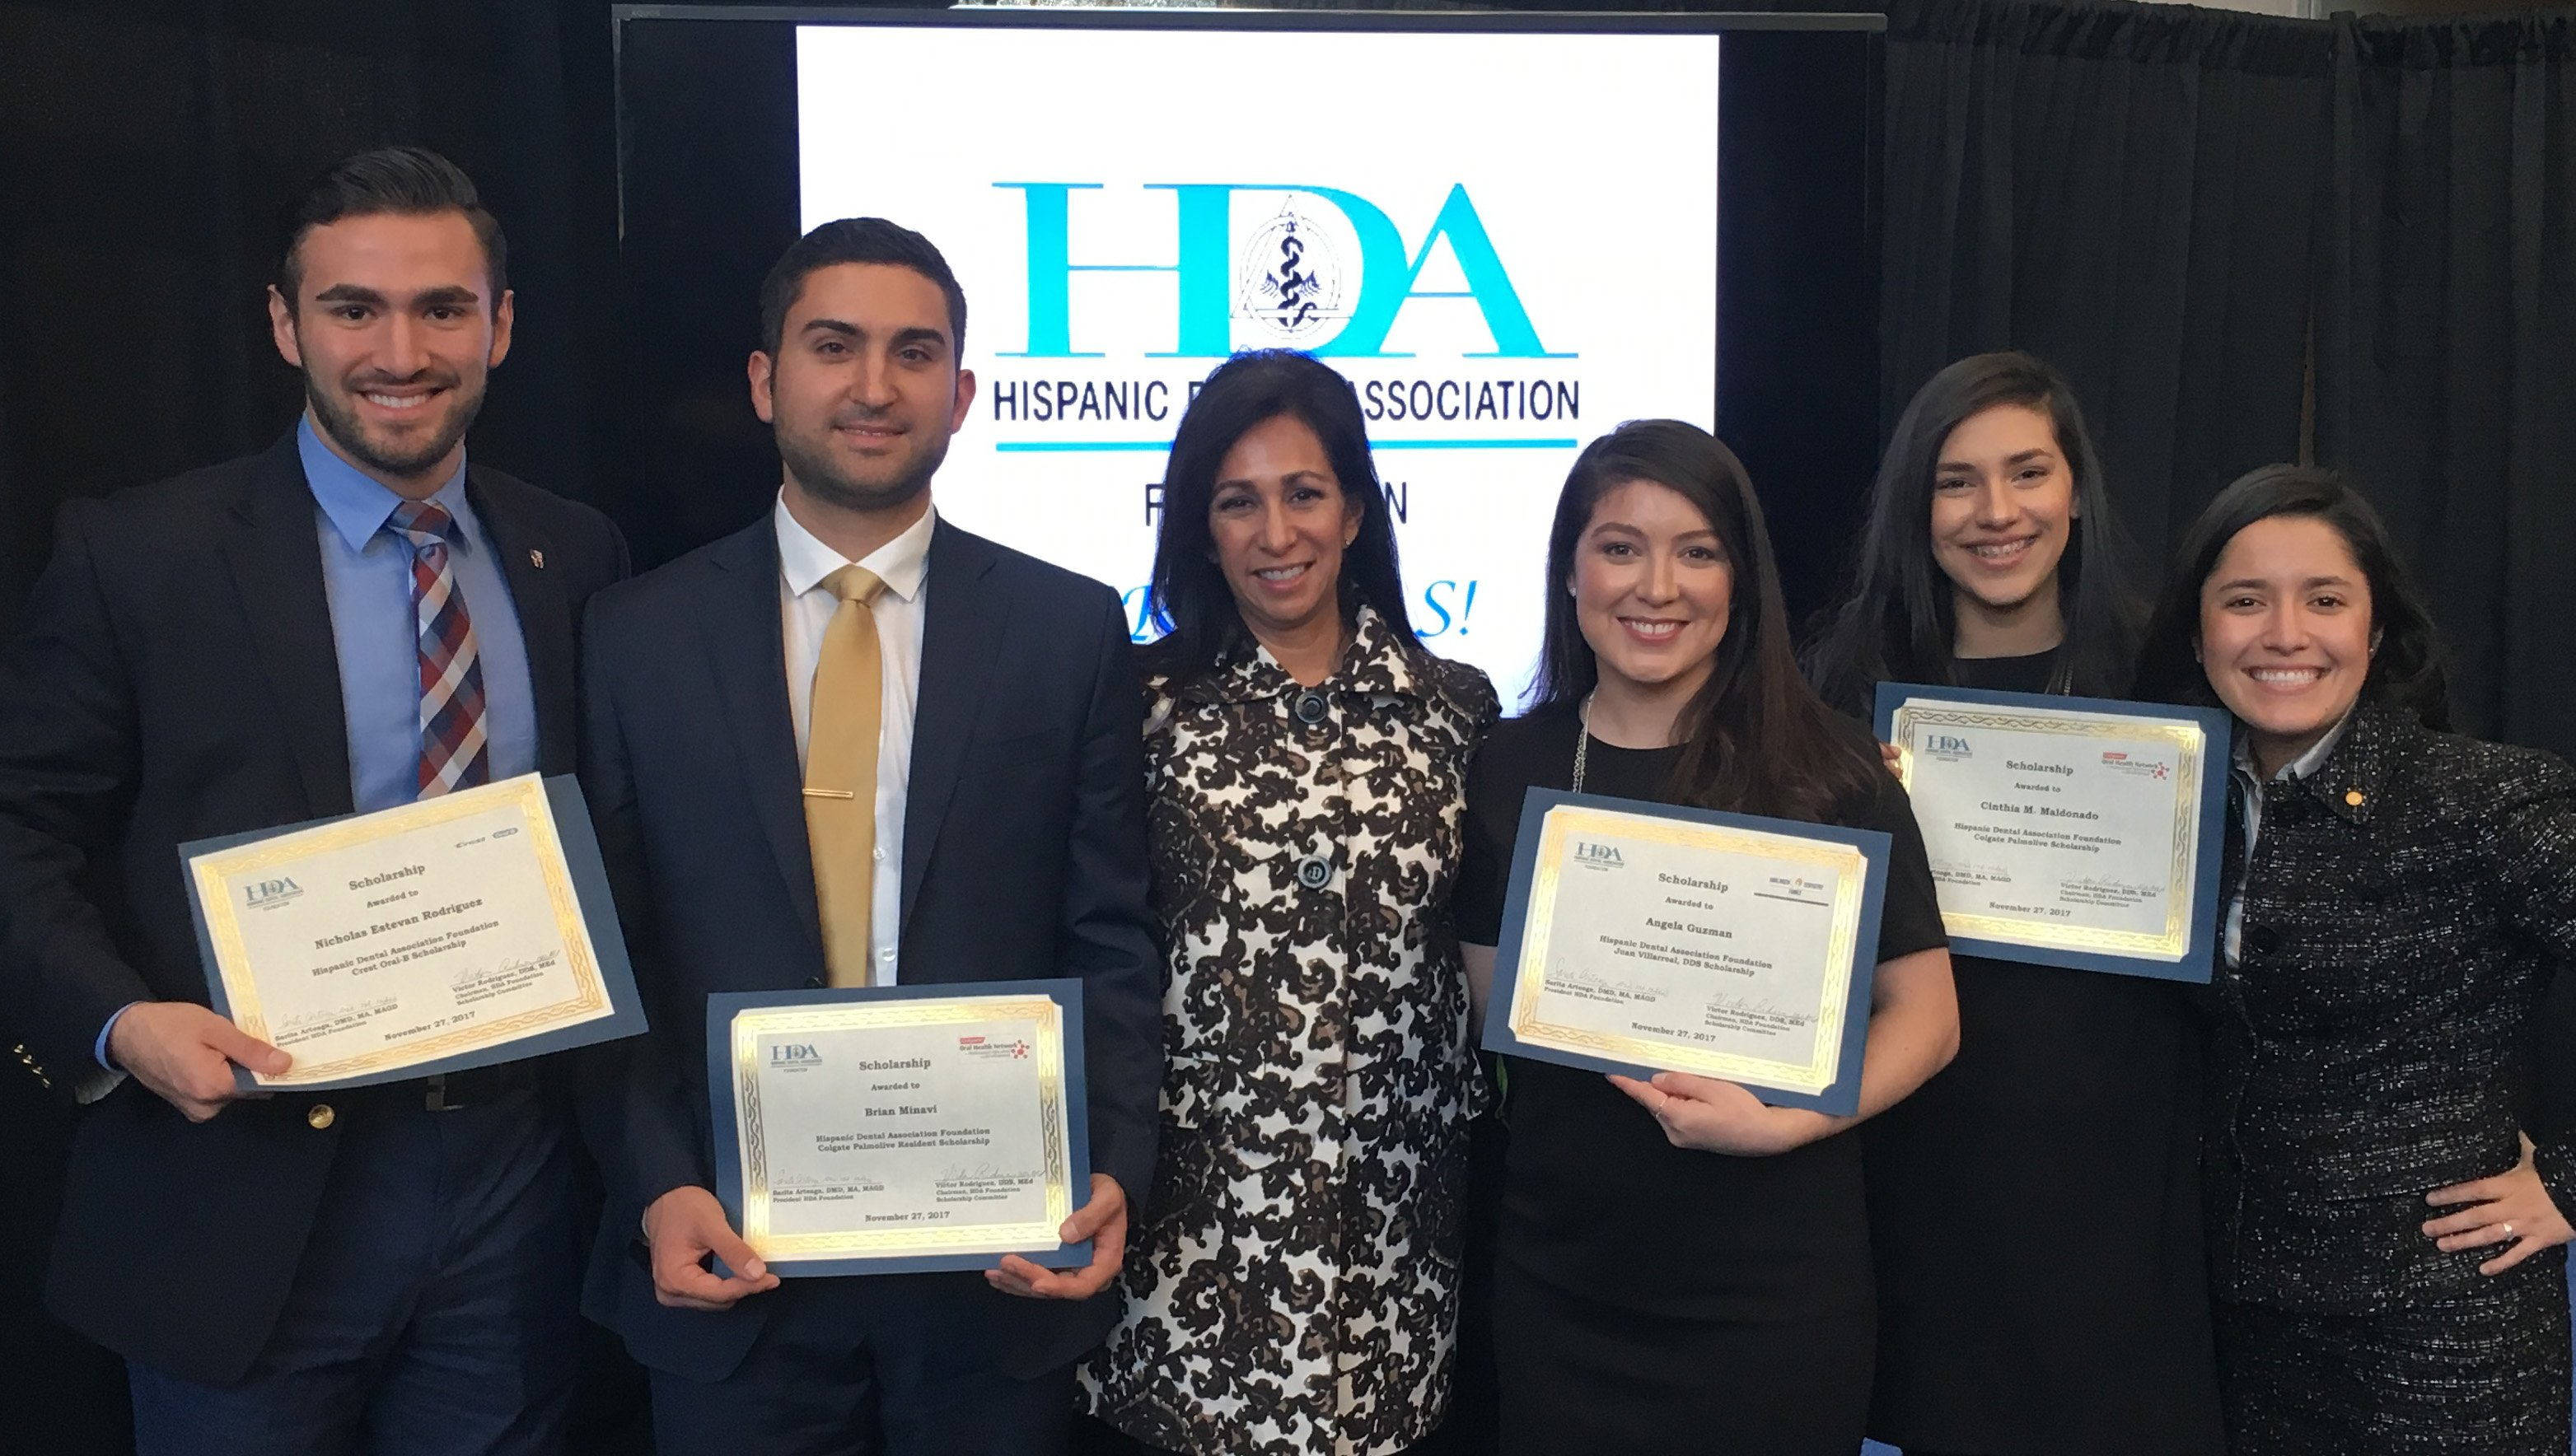 UTSD students took home scholarships thanks to the Hispanic Dental Foundation and their partners. From left are Nick Rodriguez, Dr. Brian Minavi, Dr. Margo Melchor, Angela Guzman, Cinthia Maldonado and Tanya Maestas.